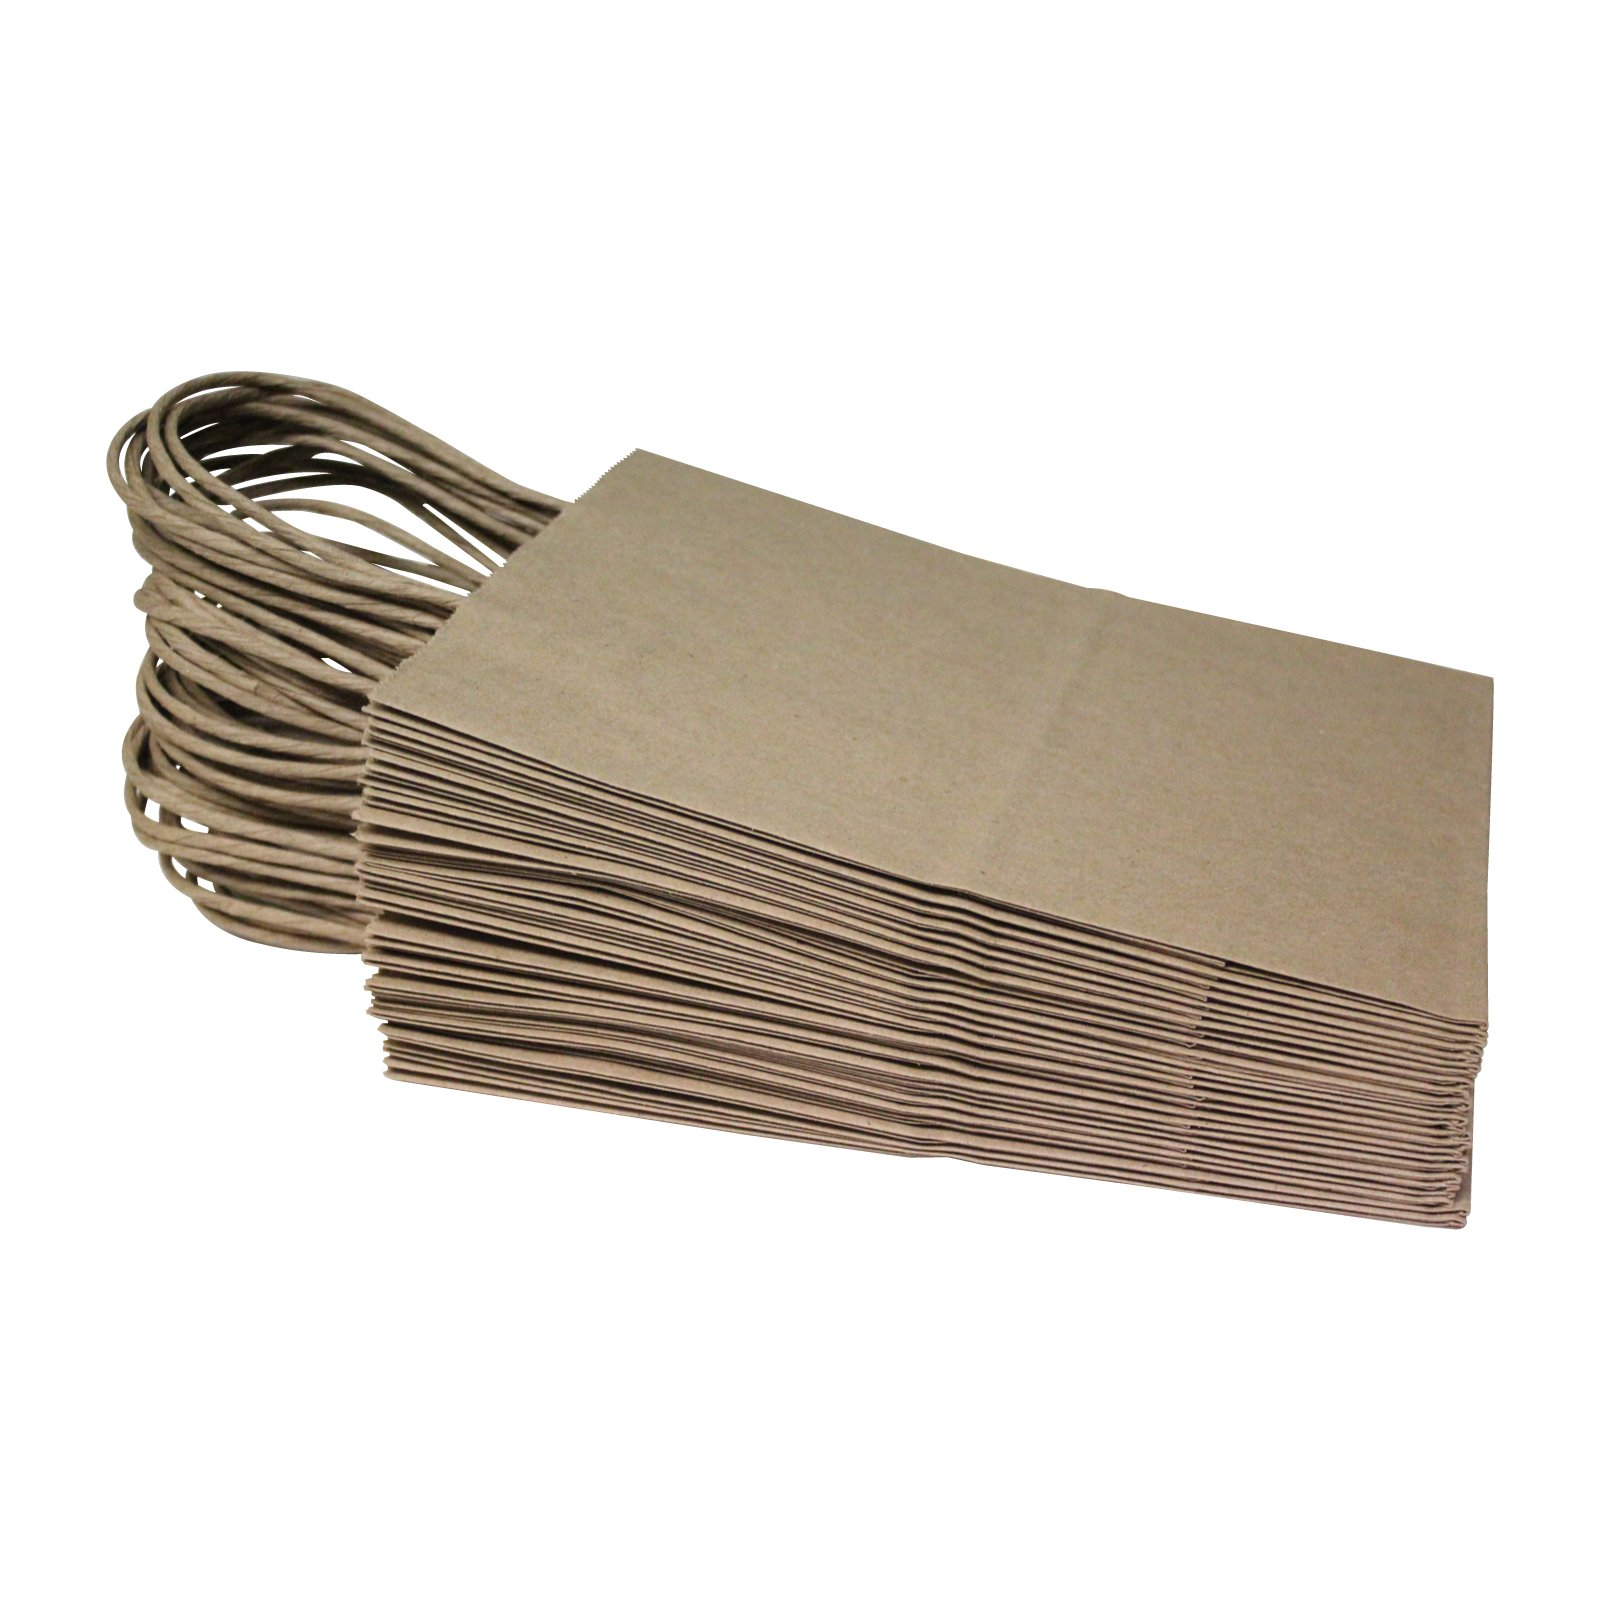 Flexicore Packaging 8''x4.75''x10''-100 Pcs-Brown Kraft Paper Shopping, Mechandise, Party, Gift Bags by Duro (Image #5)